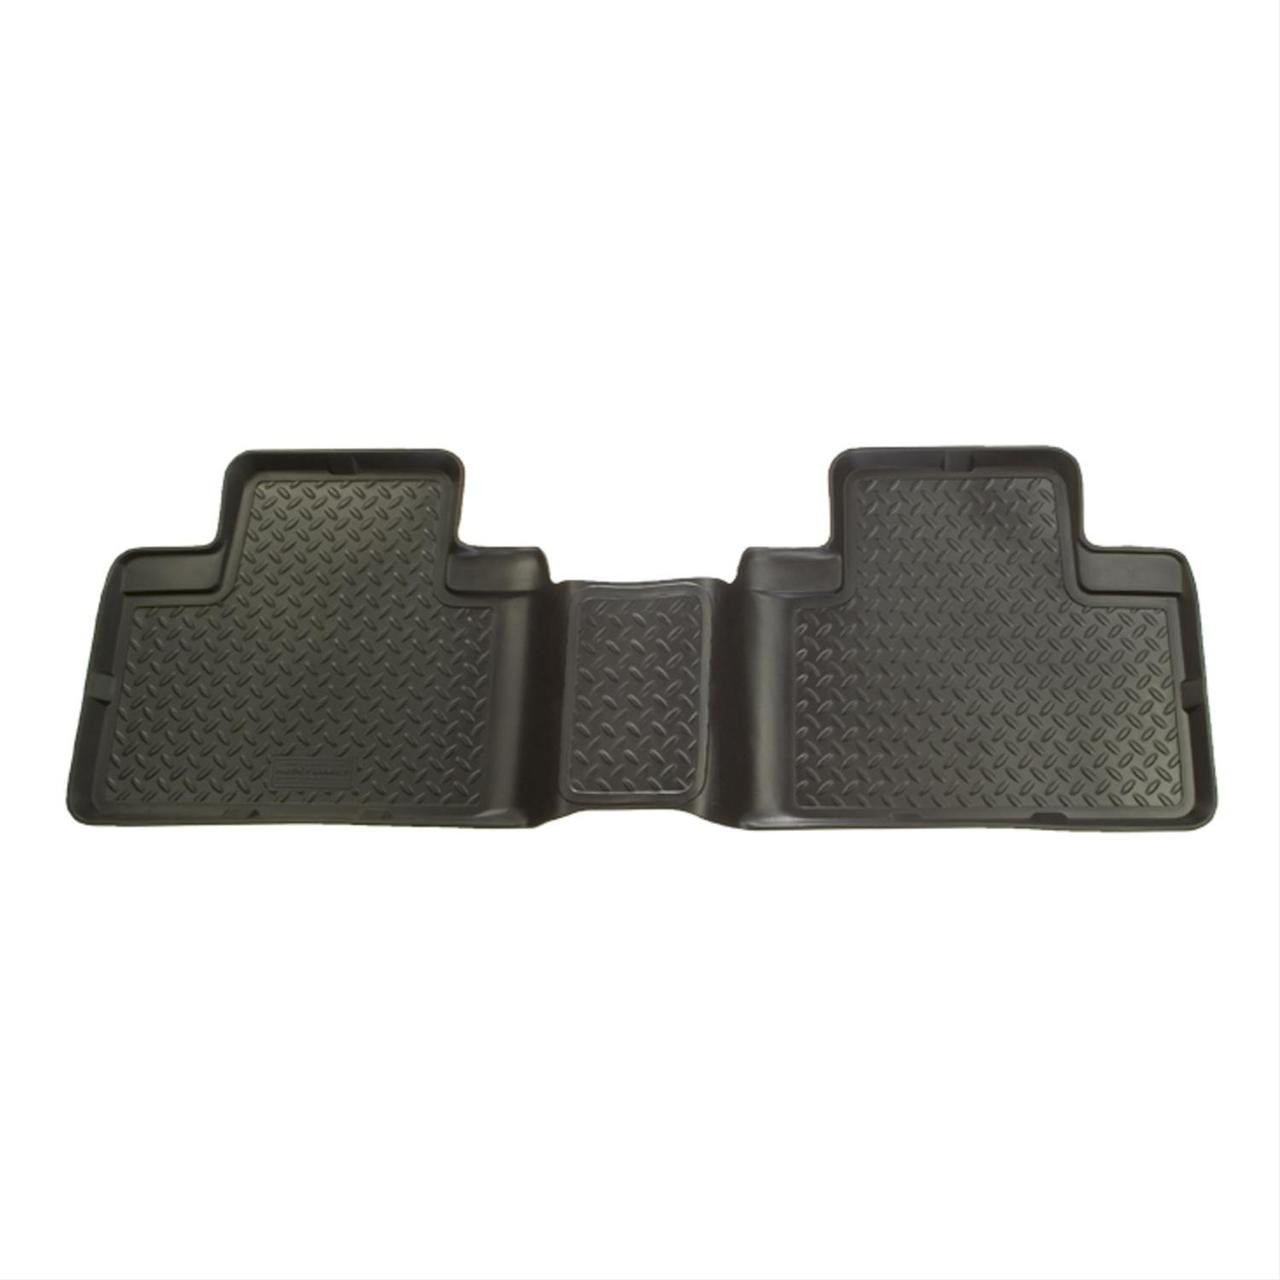 06-14 IMPALA/04-08 GRAND PRIX 2ND SEAT FLOOR LINER BLACK